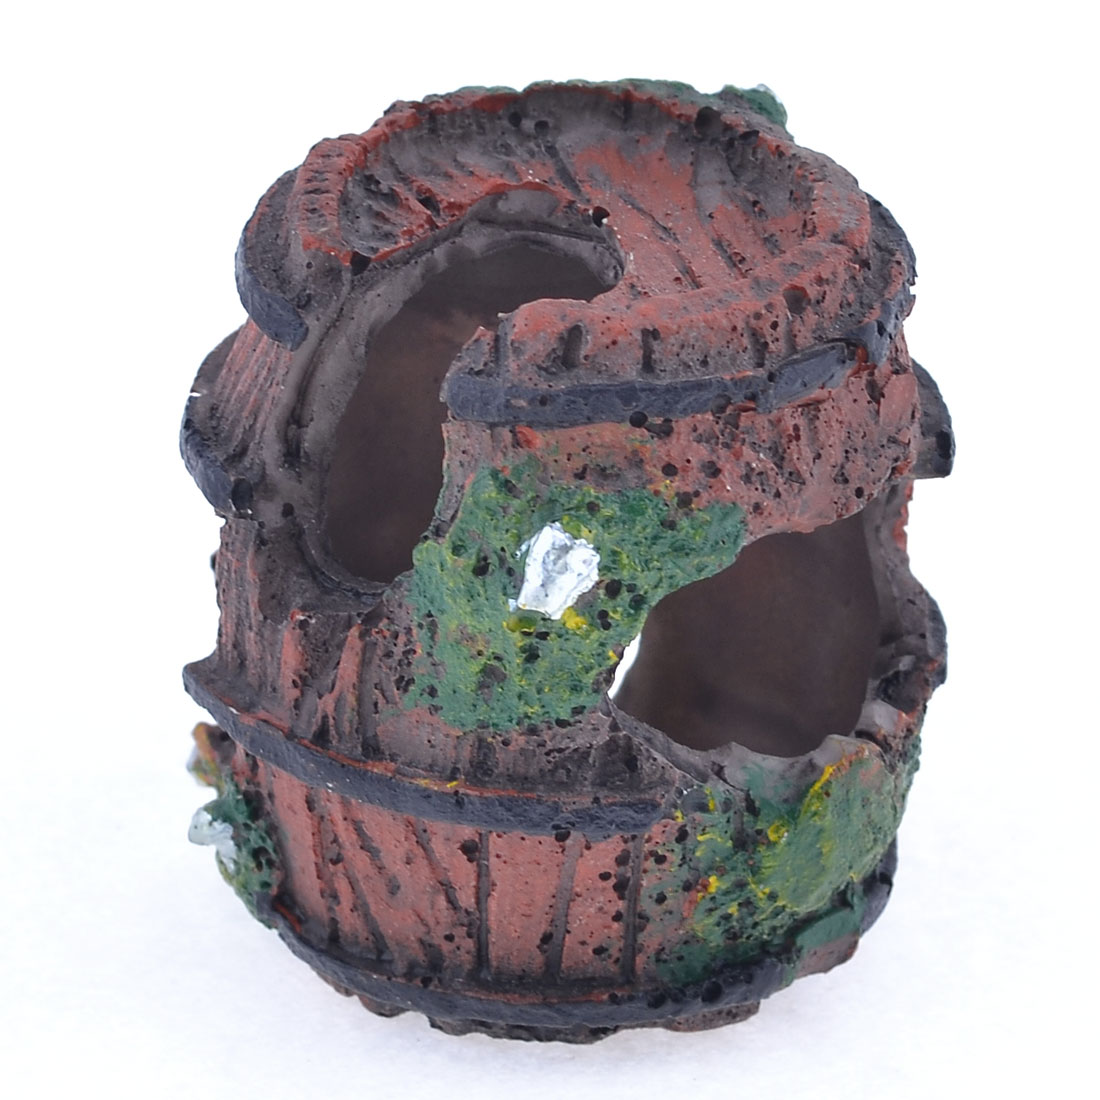 Fish Tank Landscaping Resin Brickred Green Artificial Barrel Ornament